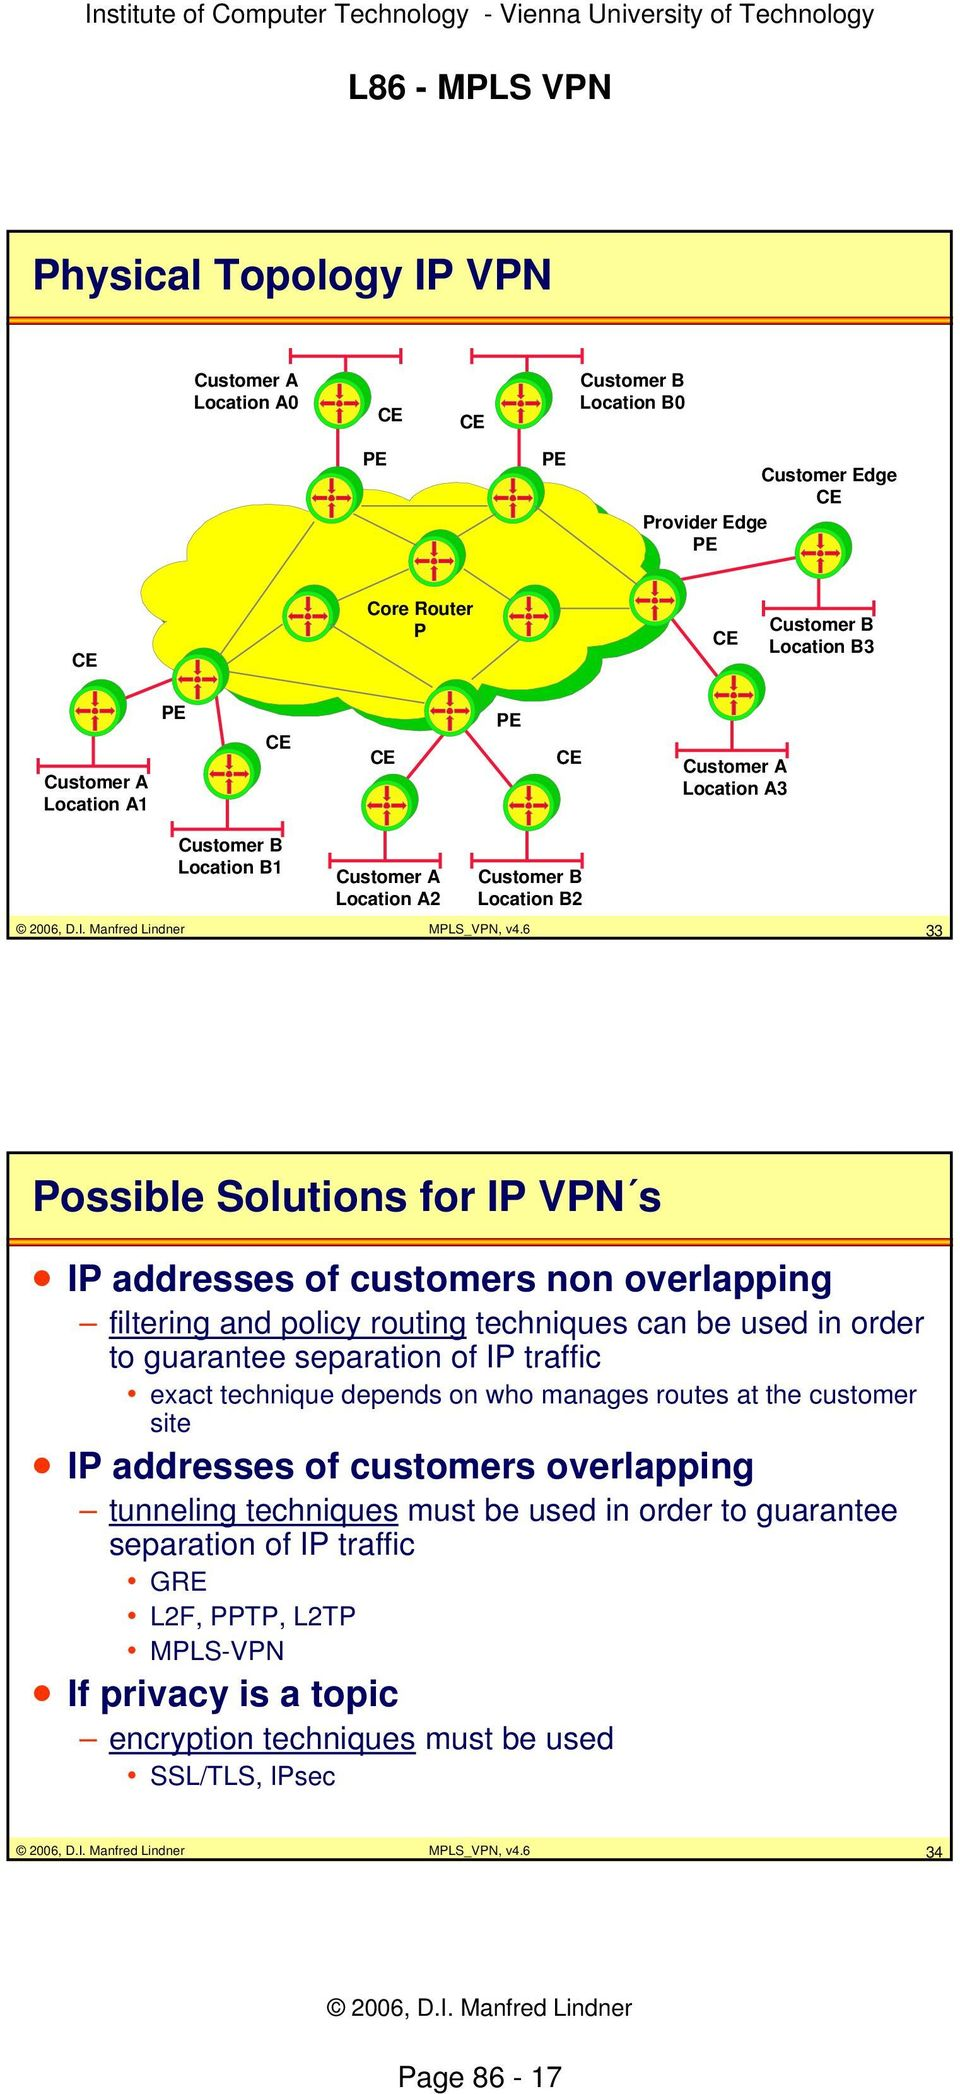 6 33 Possible Solutions for IP VPN s IP addresses of customers non overlapping filtering and policy routing techniques can be used in order to guarantee separation of IP traffic exact technique